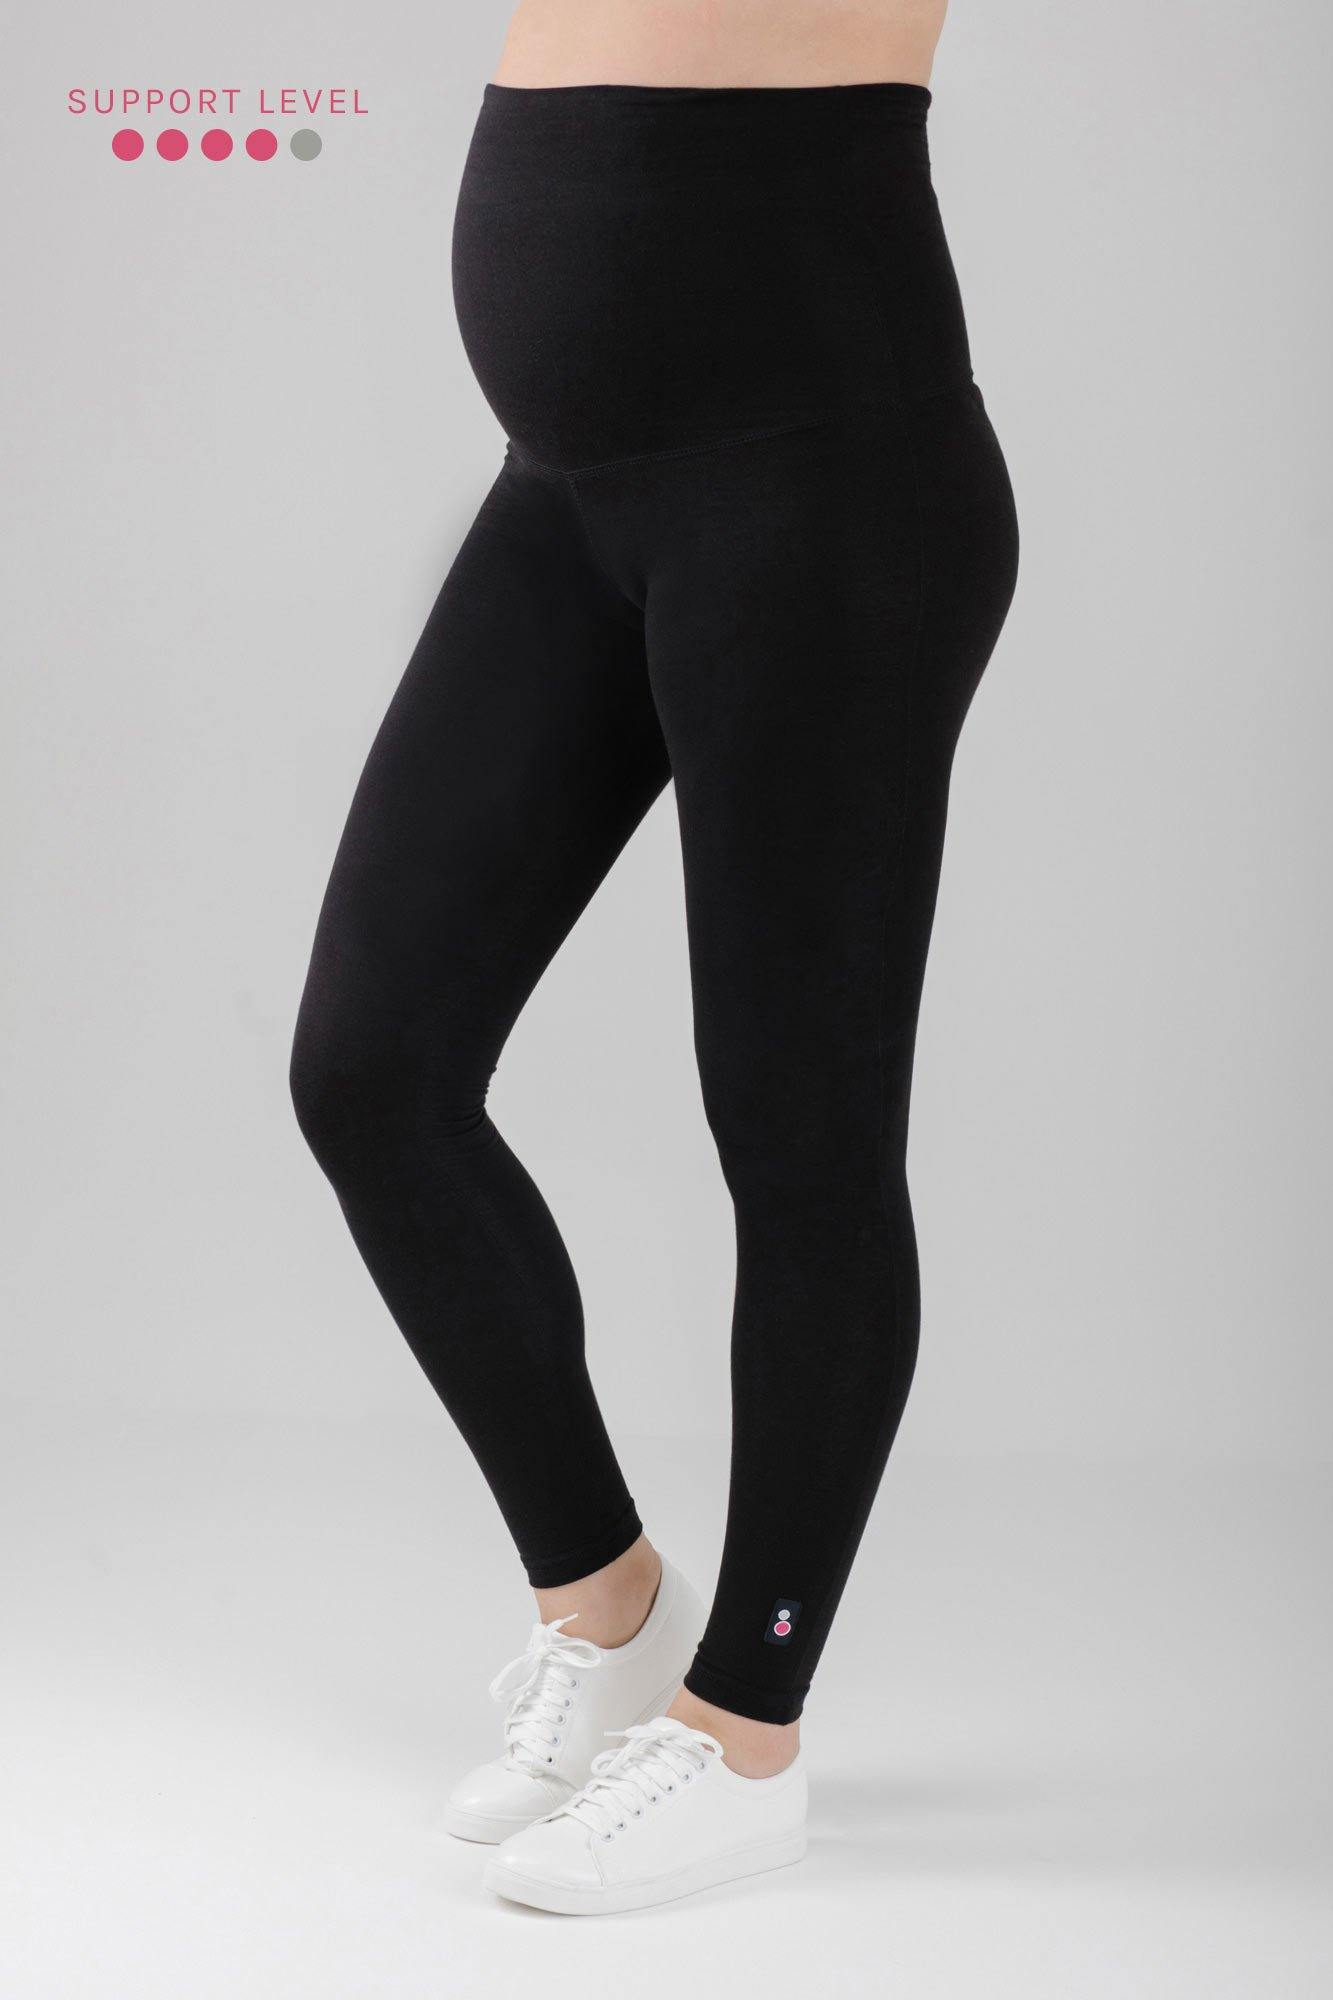 Supportive pregnancy exercise Kit: Top & Leggings - FittaMamma